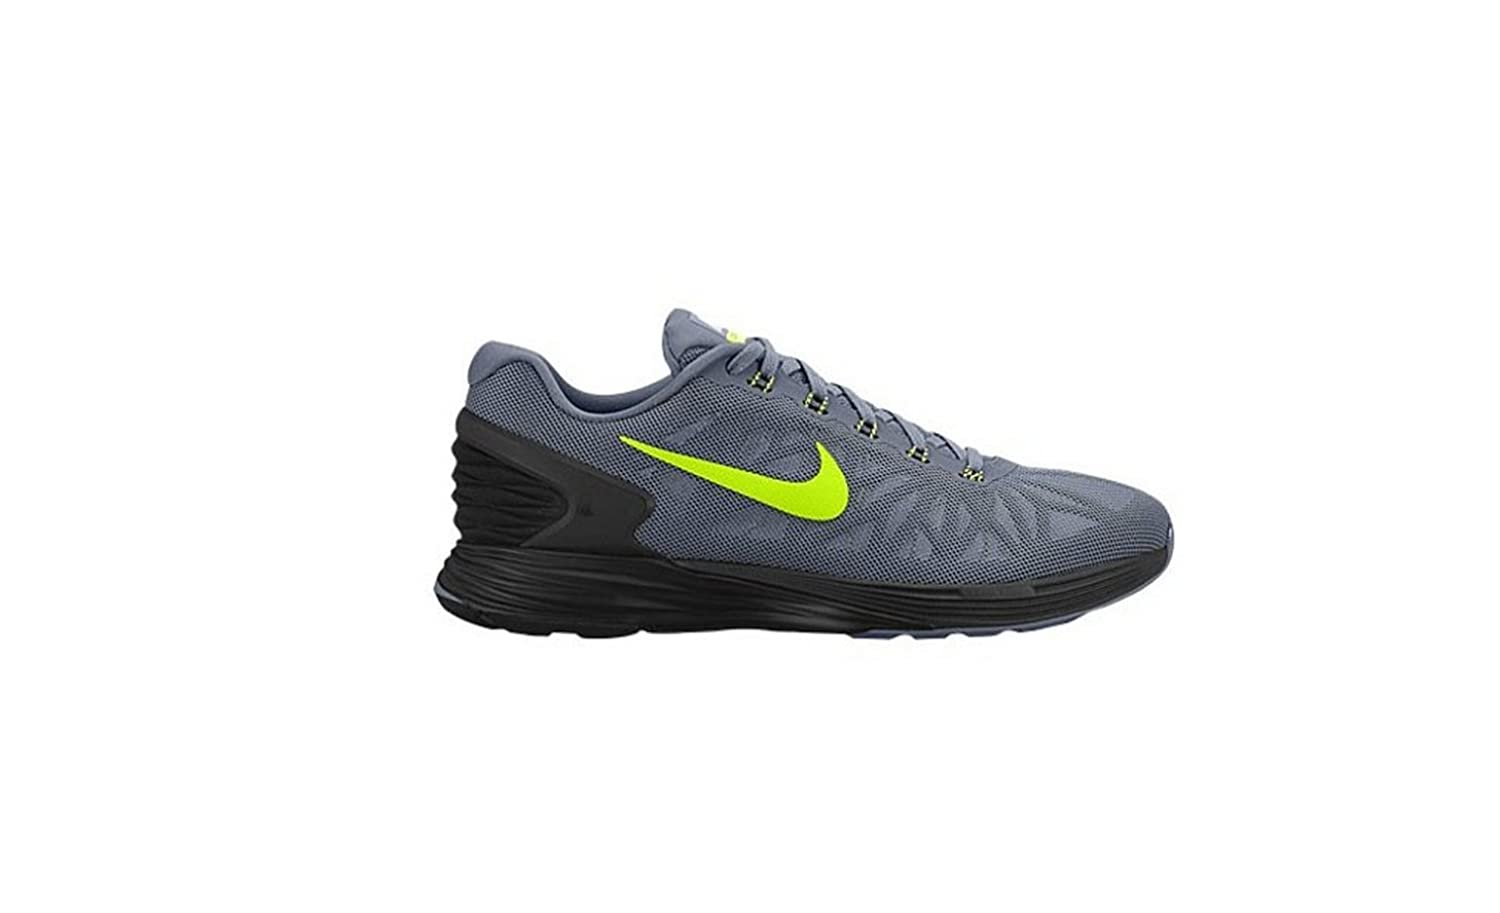 Nike Lunarglide 6 Mens Taille 10 vente abordable zzmqkx8D